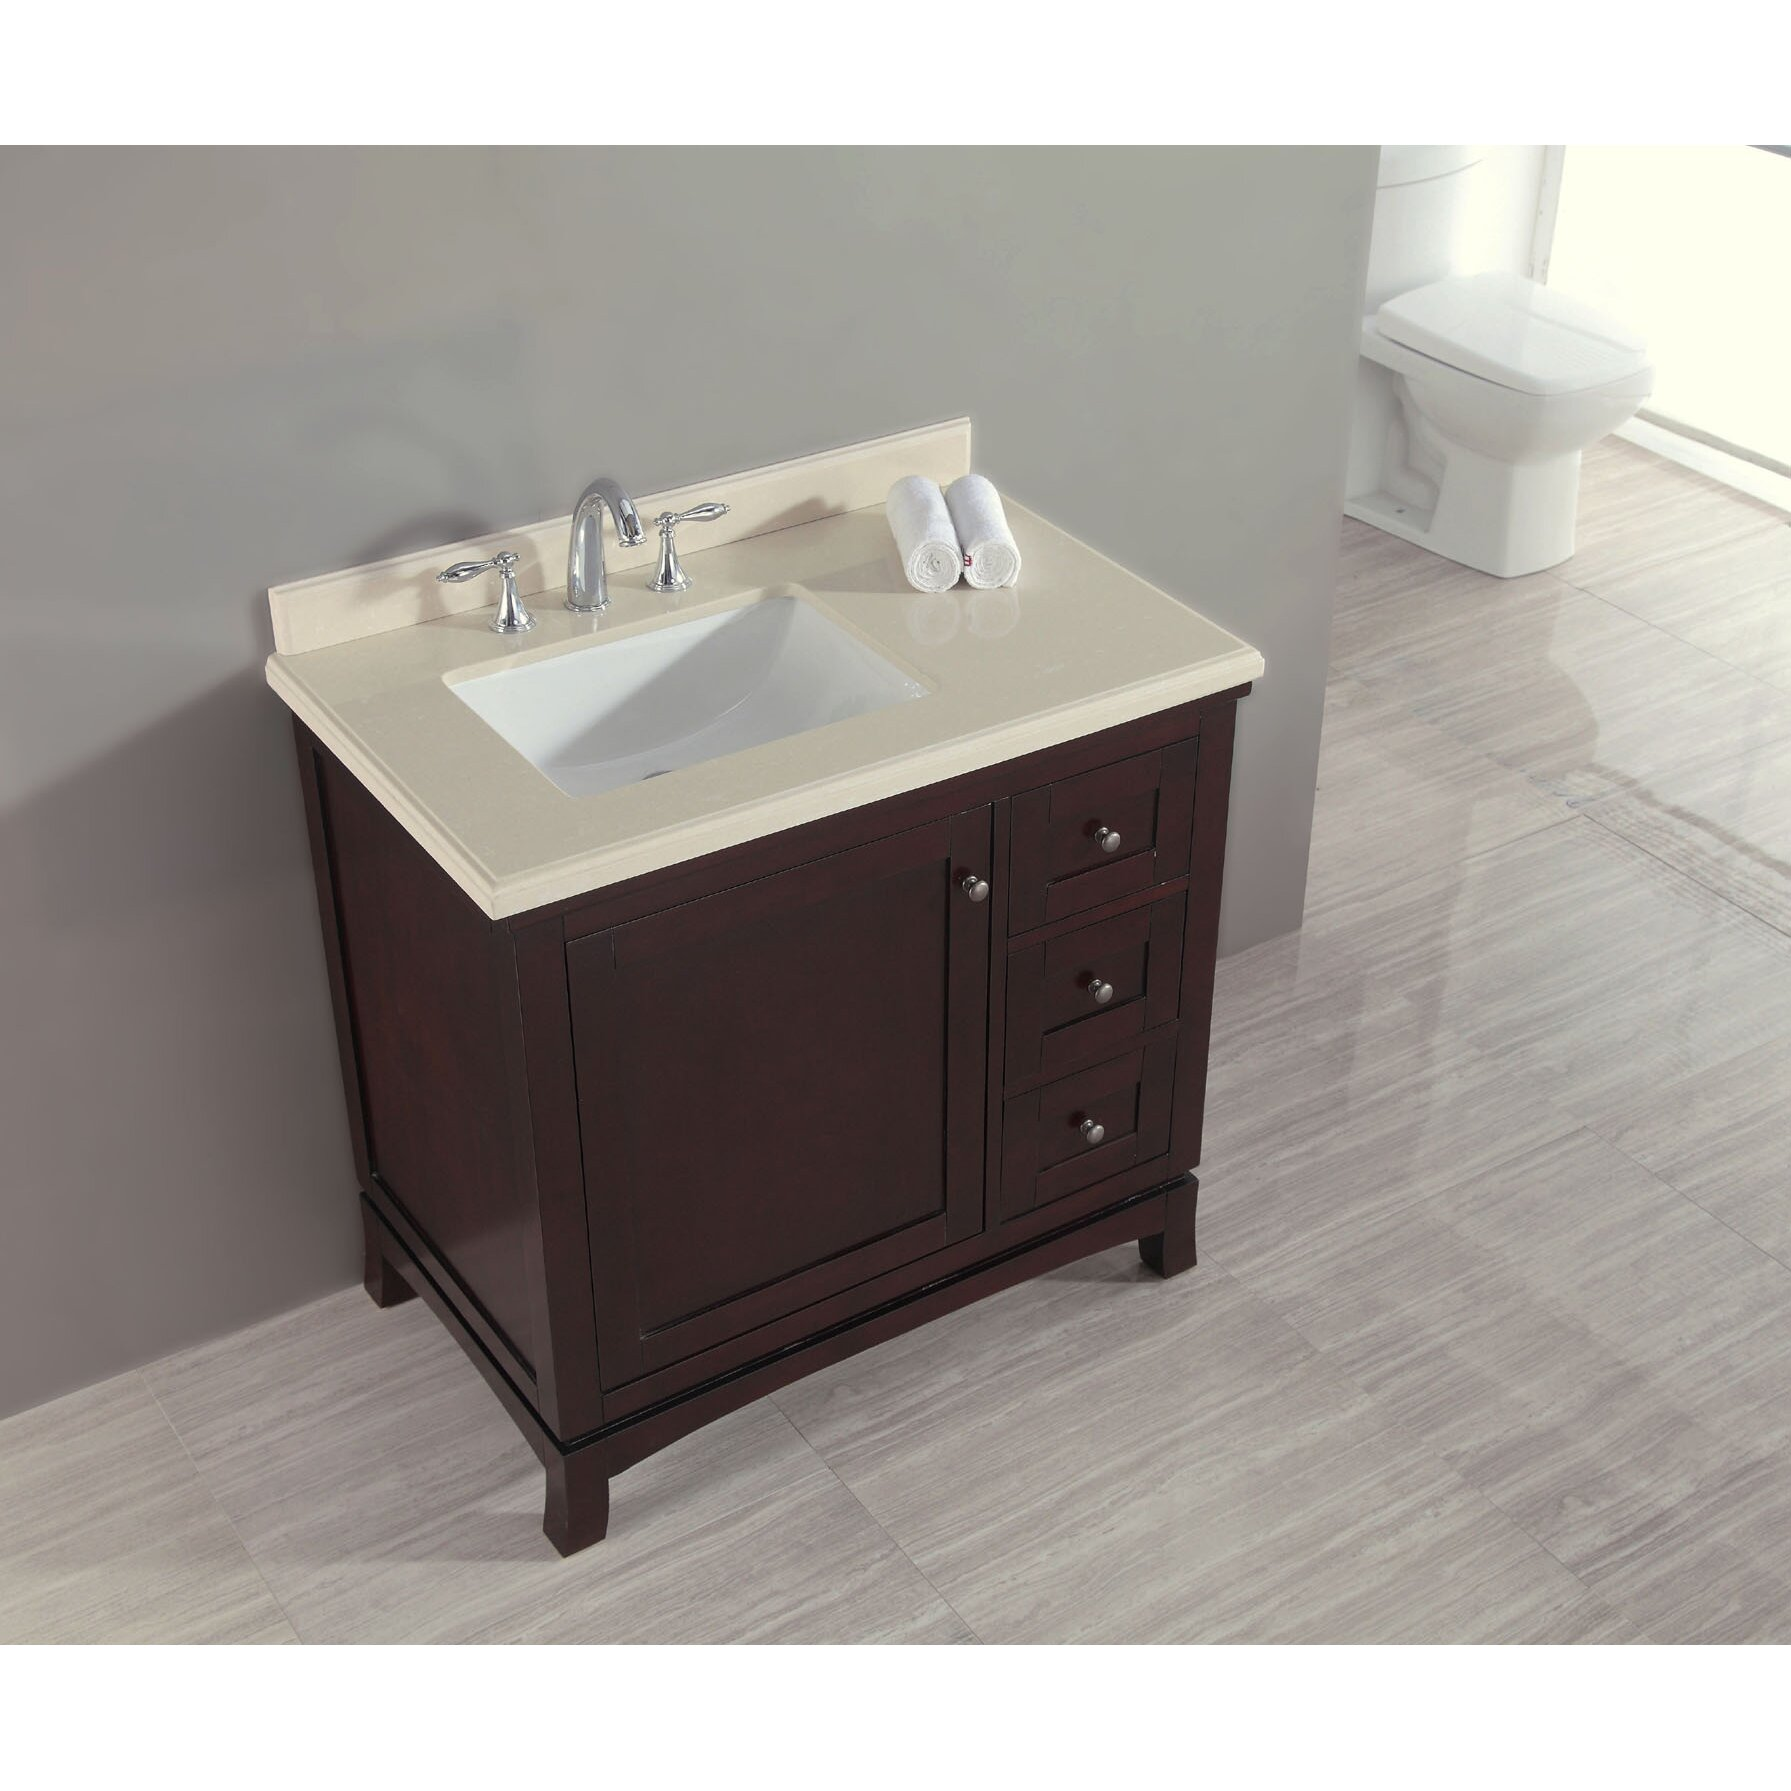 Ove decors valega 36 single bathroom vanity set reviews for Bathroom vanities